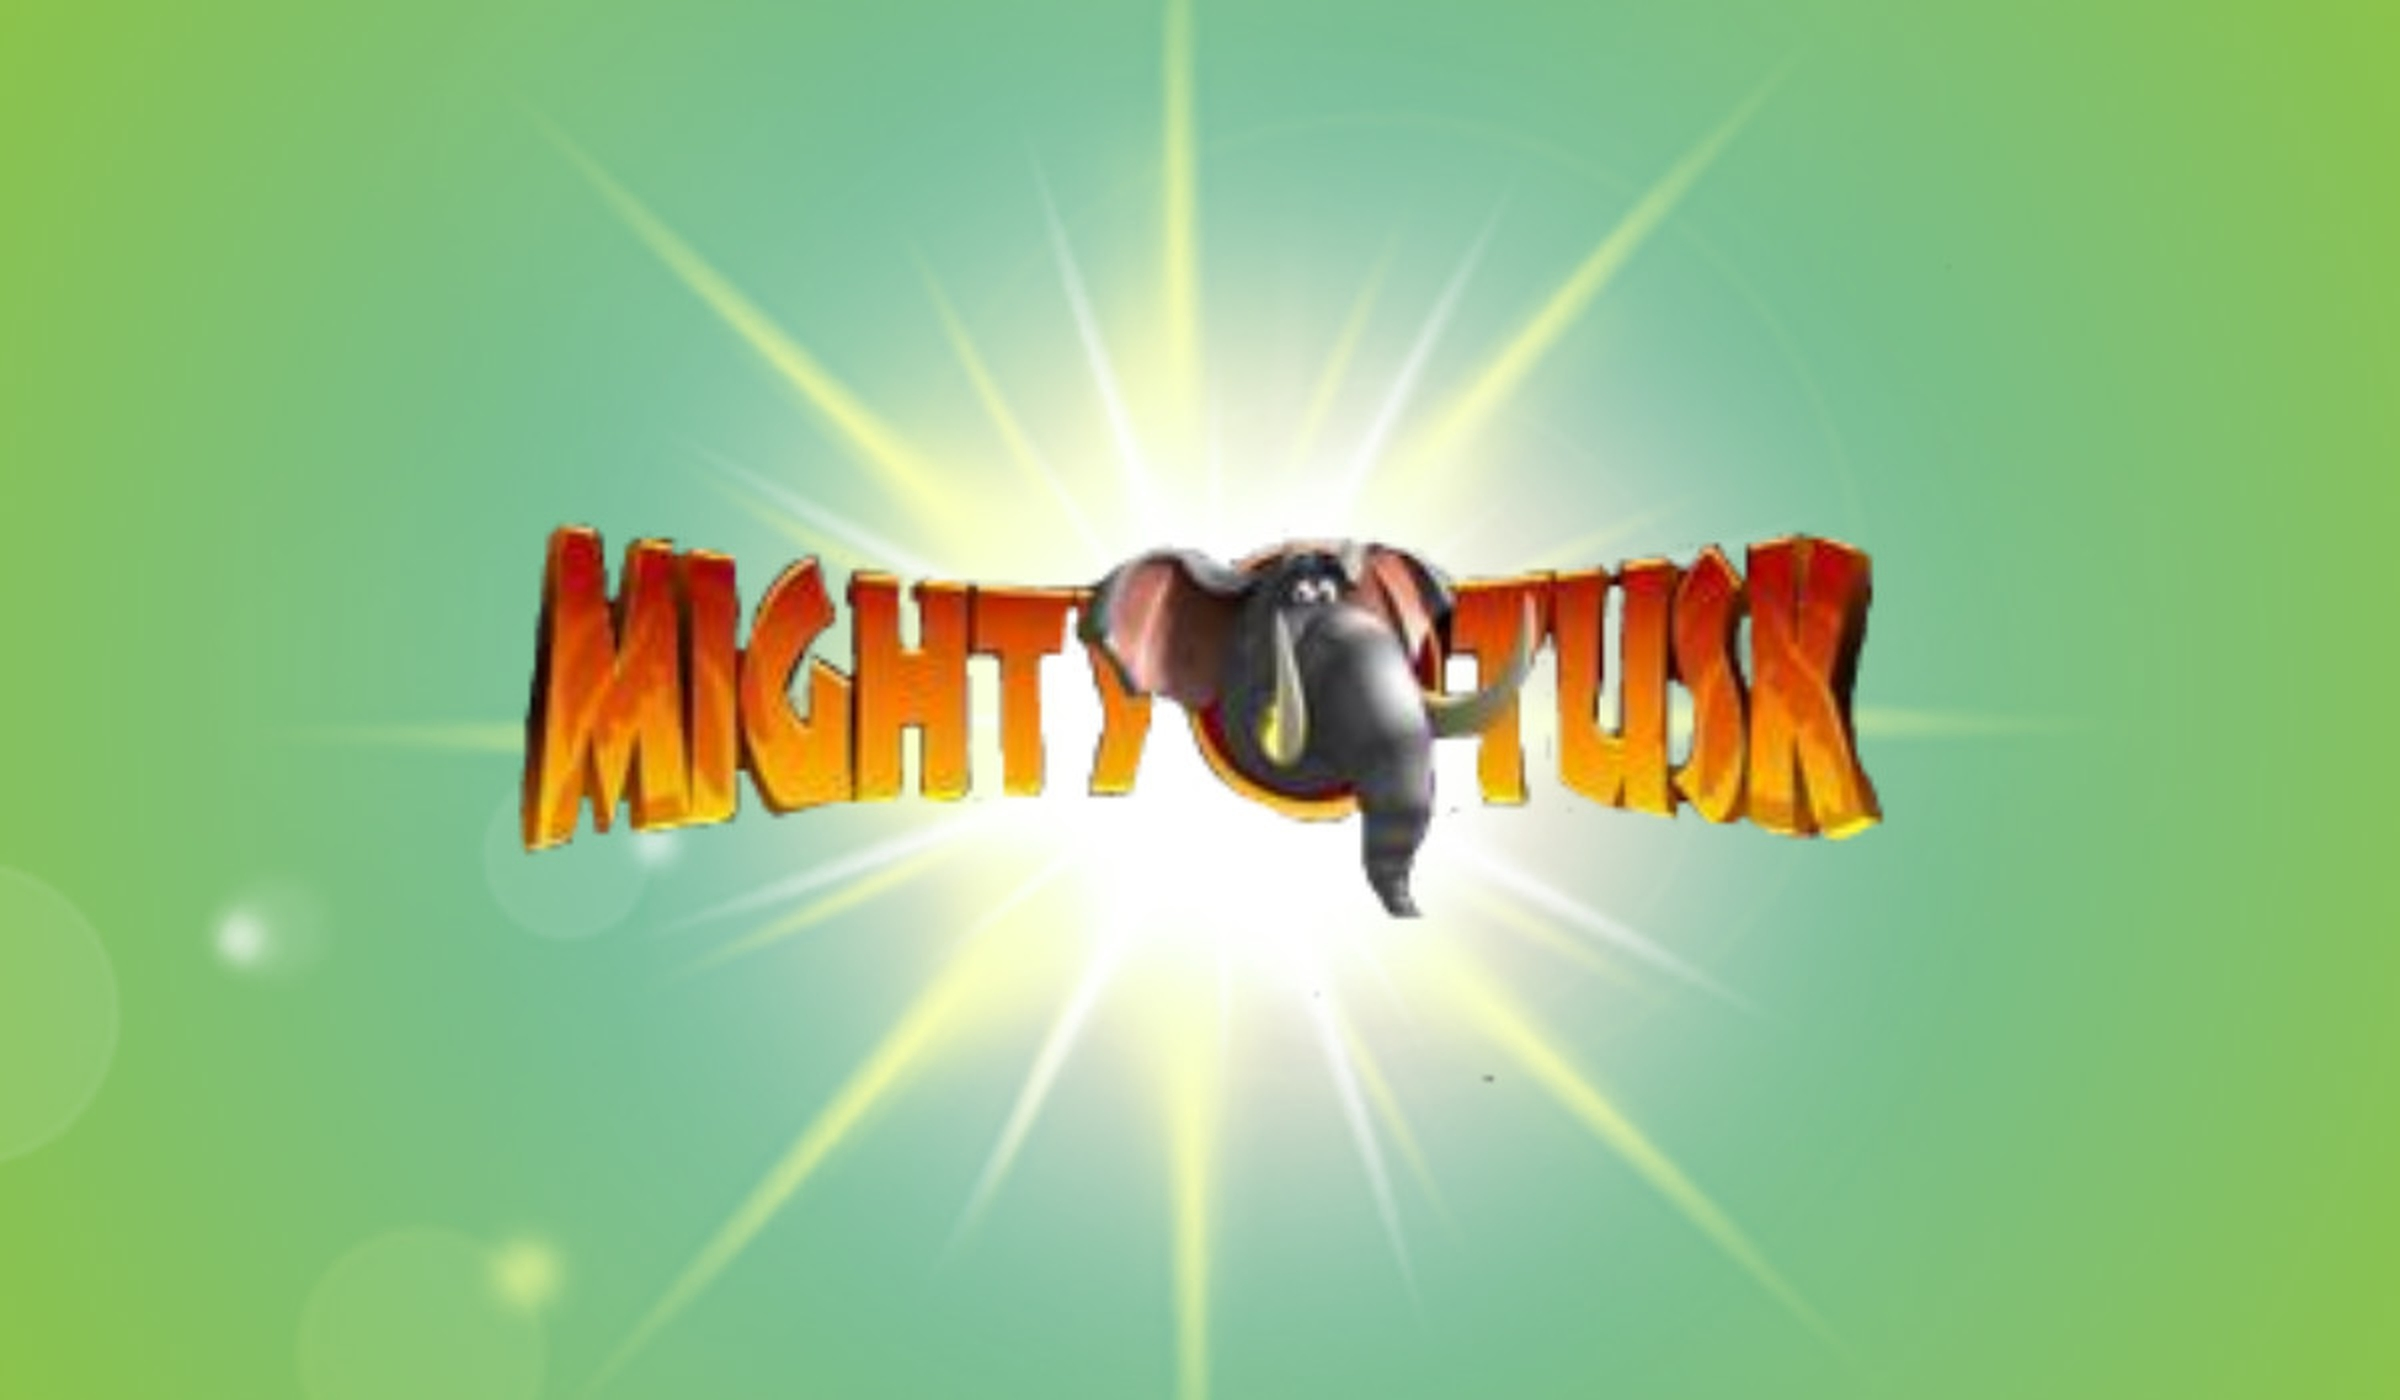 The Mighty Tusk Online Slot Demo Game by Blueprint Gaming